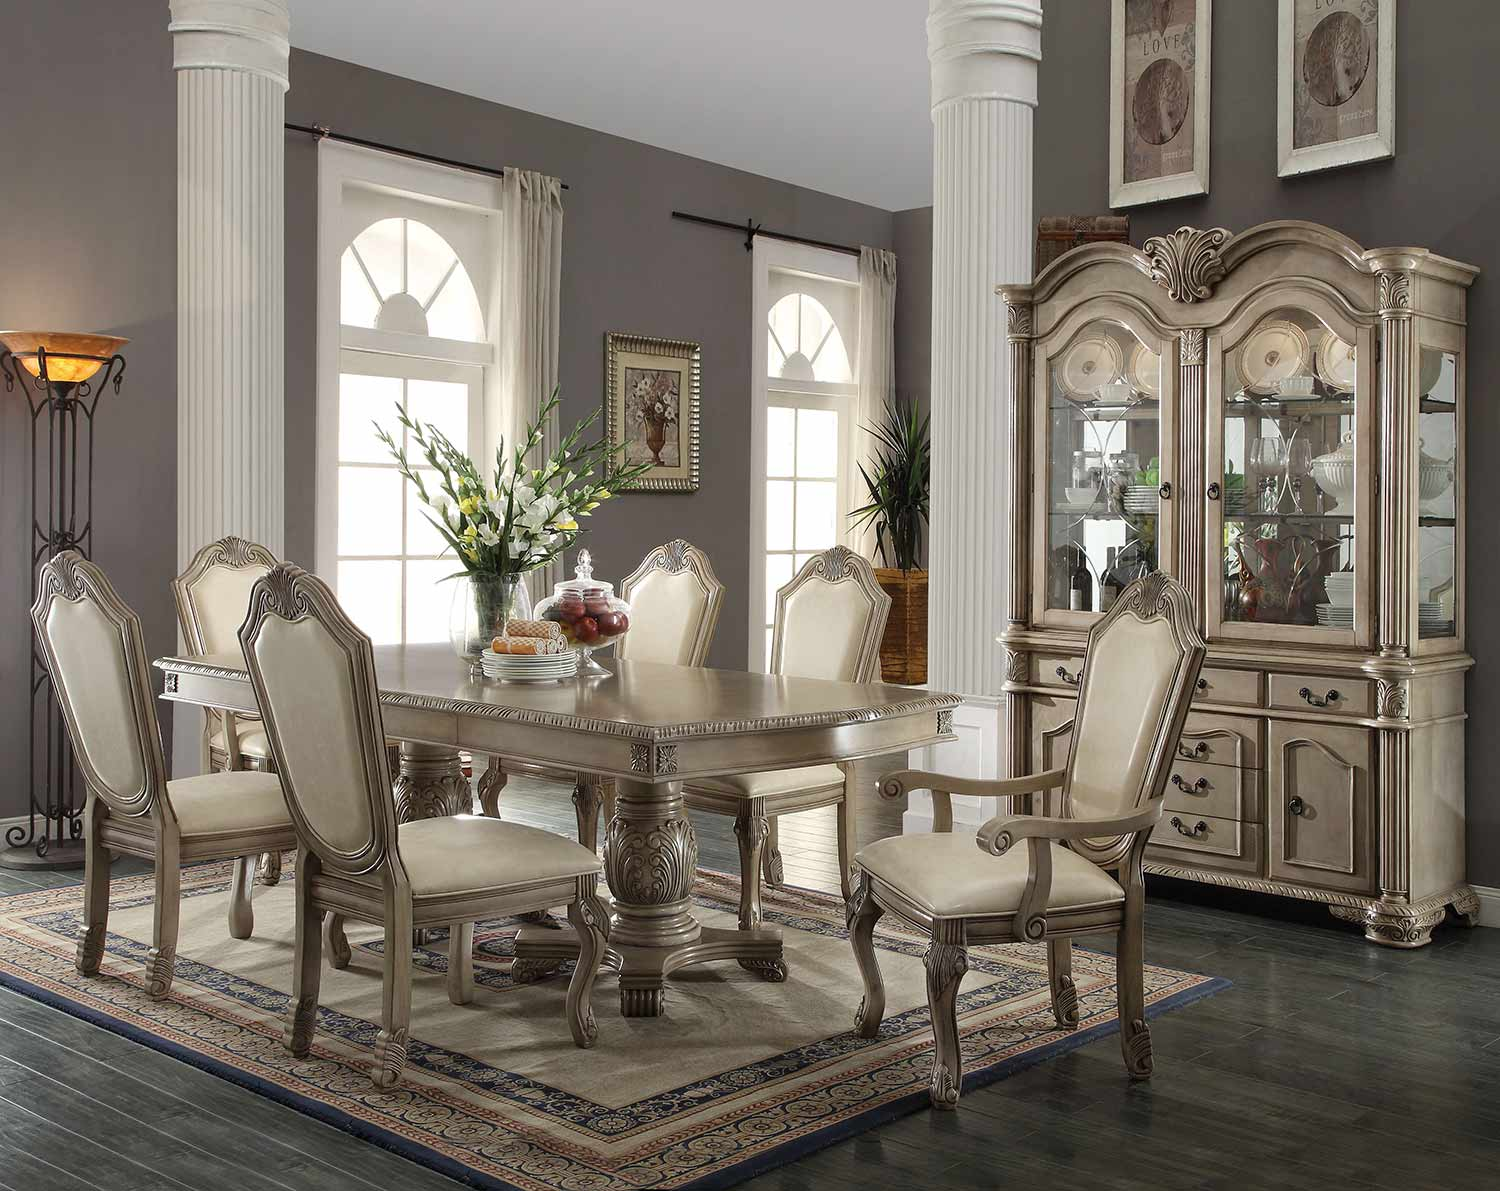 Acme Chateau de Ville Dining Set with Double Pedestal - Antique White